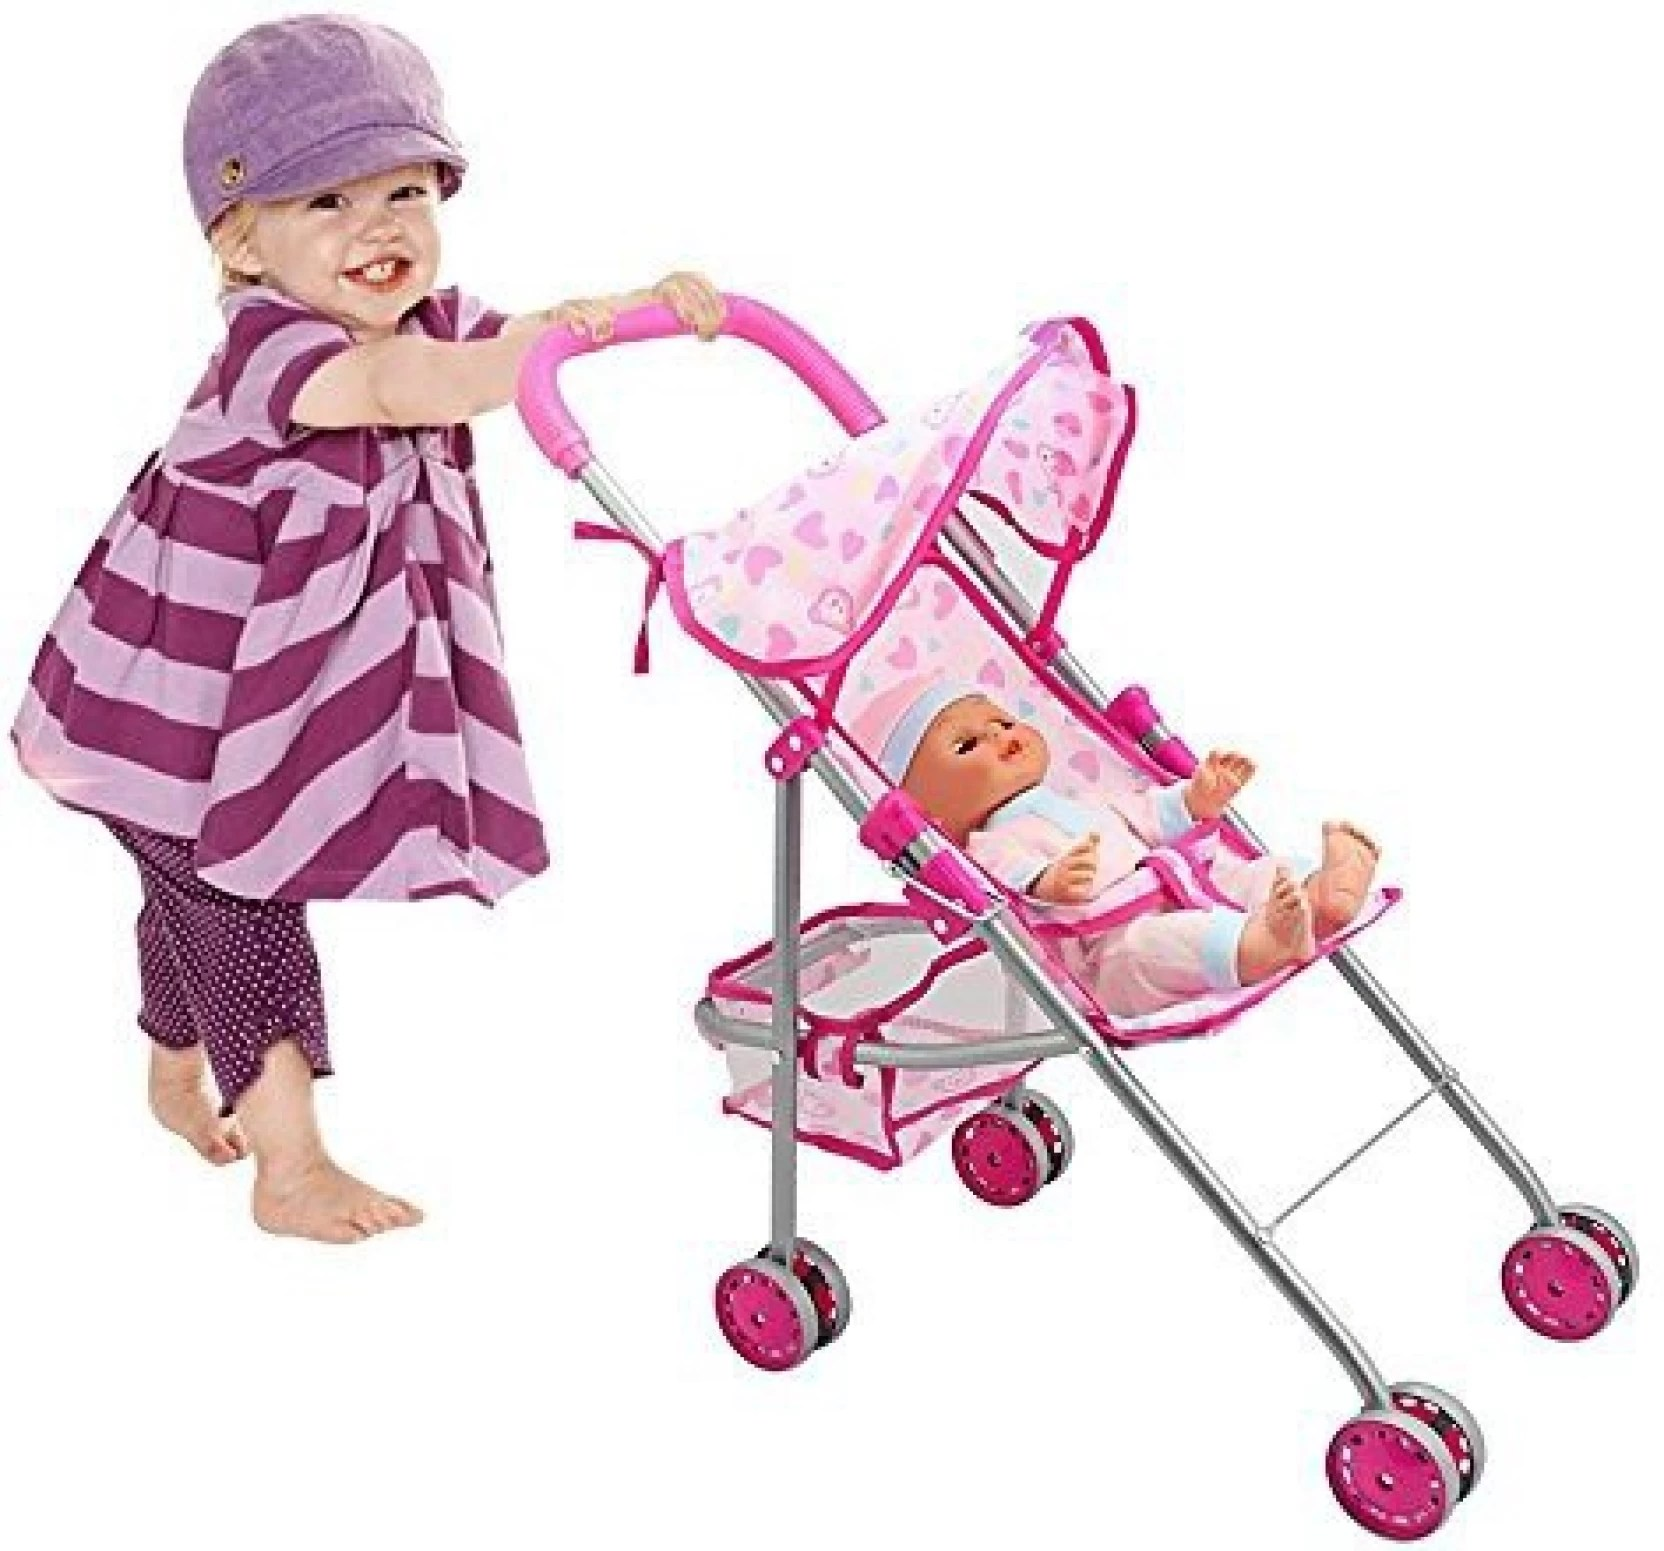 Toddler Stroller India Happycell Doll Stroller Baby Toddler Toy Trolley Pram Go